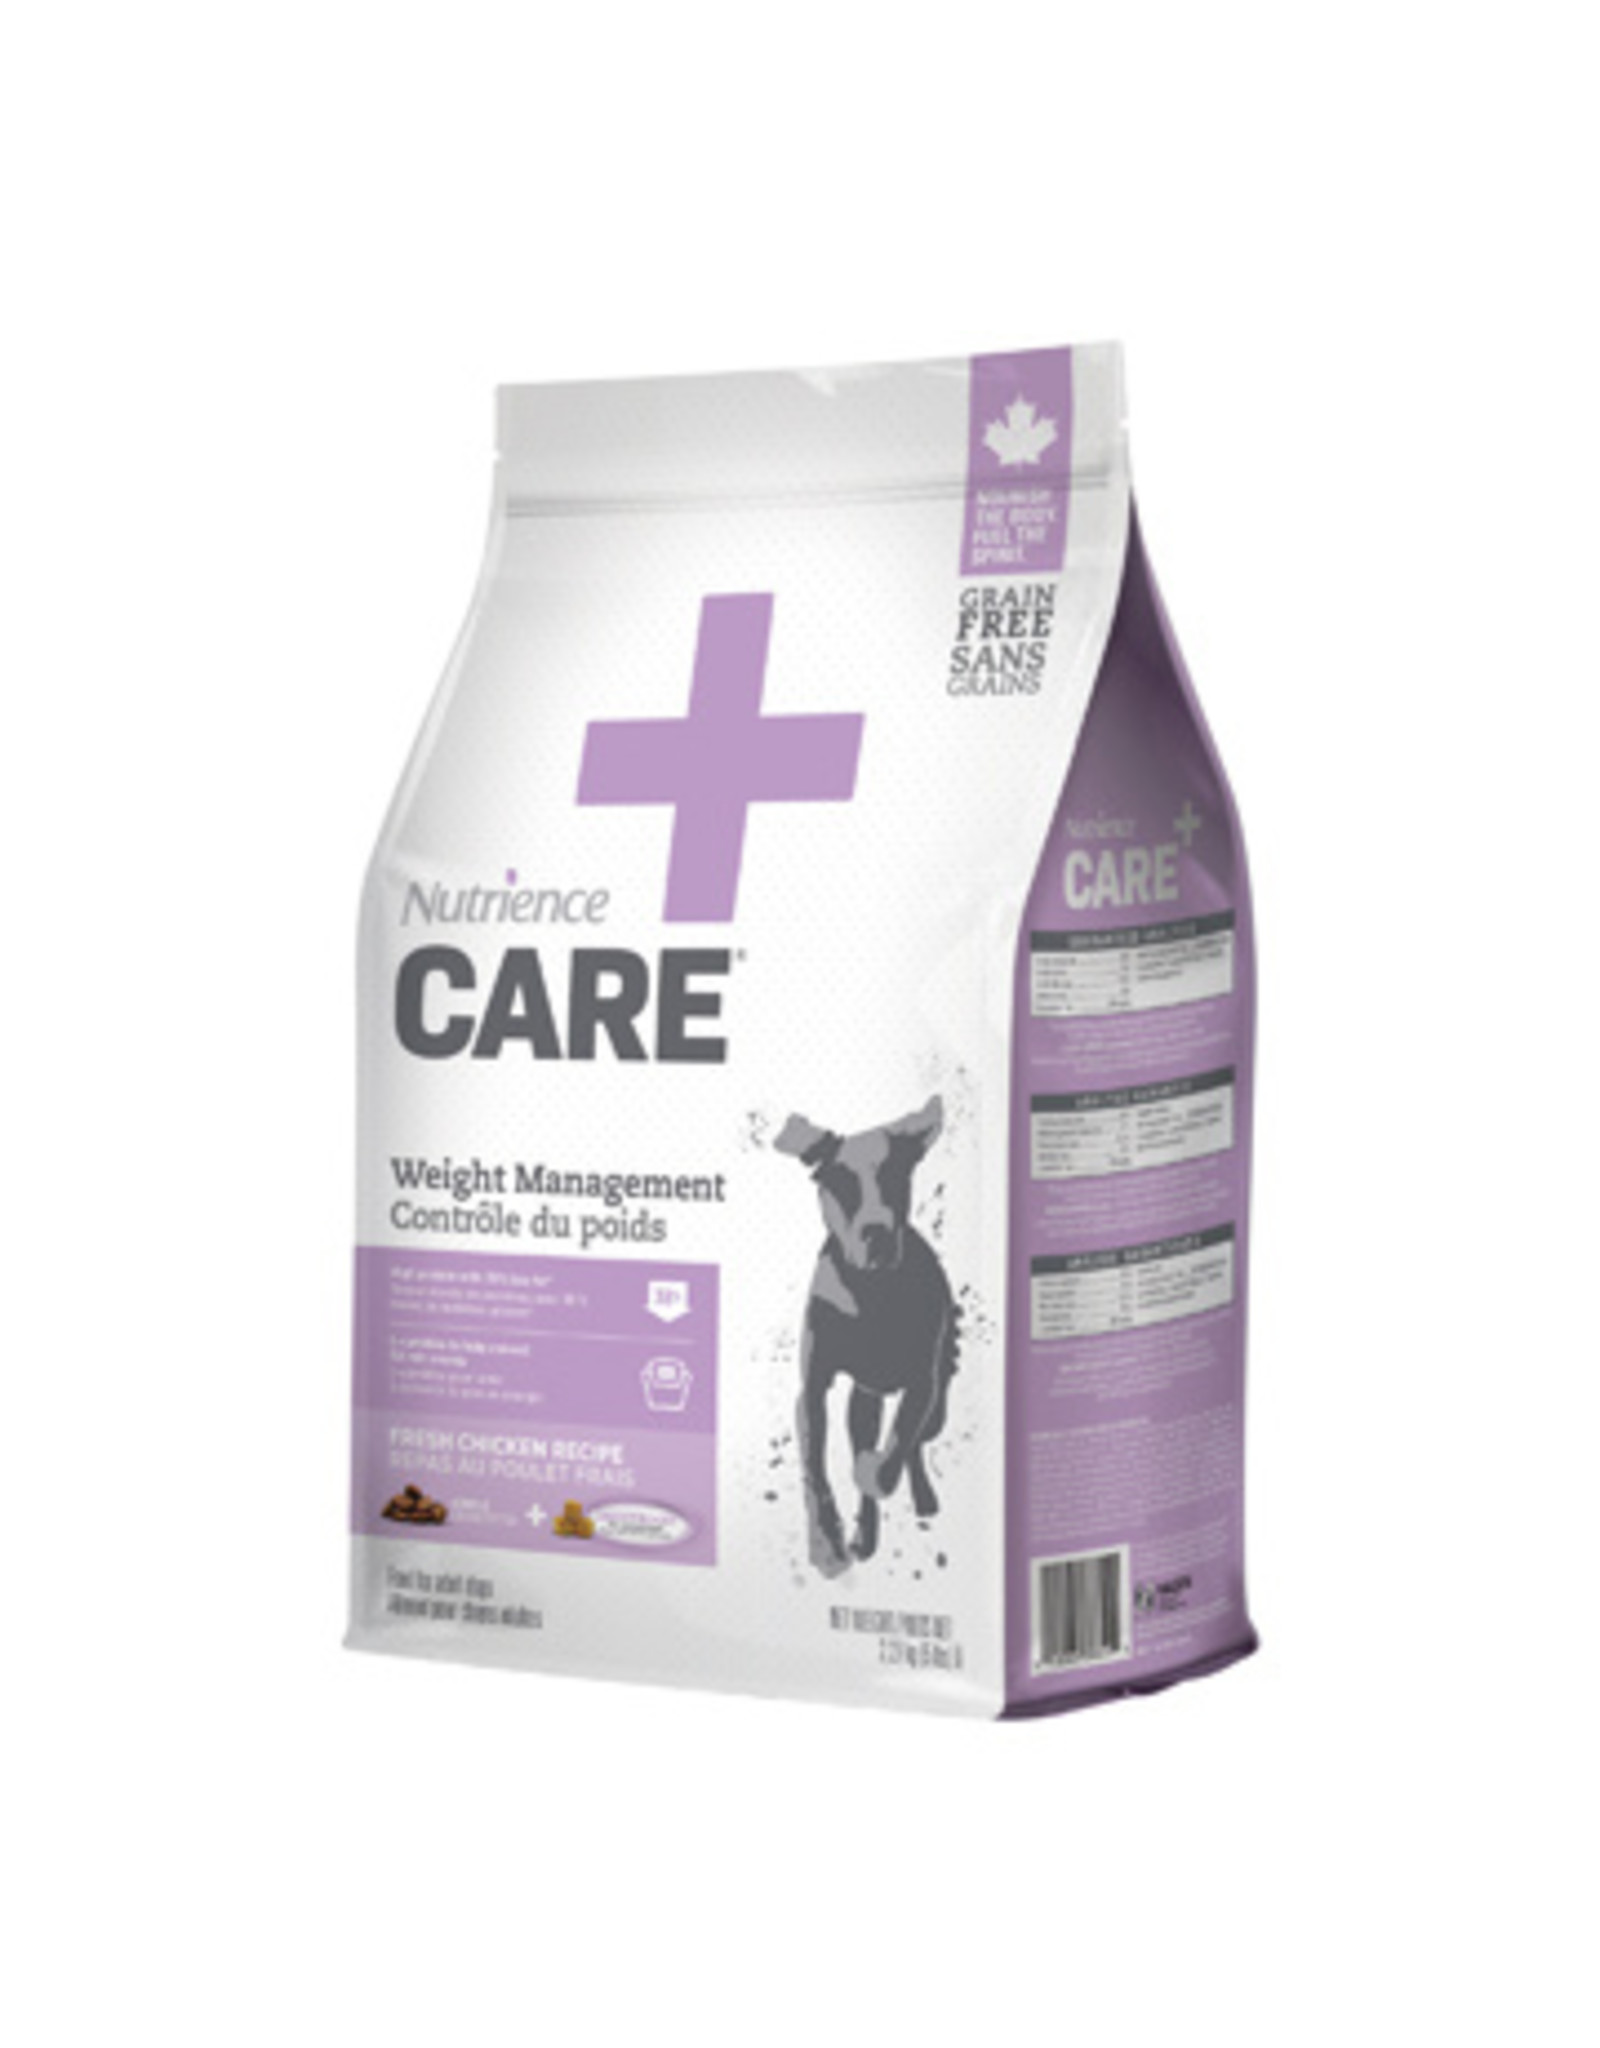 Nutrience Nutrients Dog Care Weight Management Dry Food